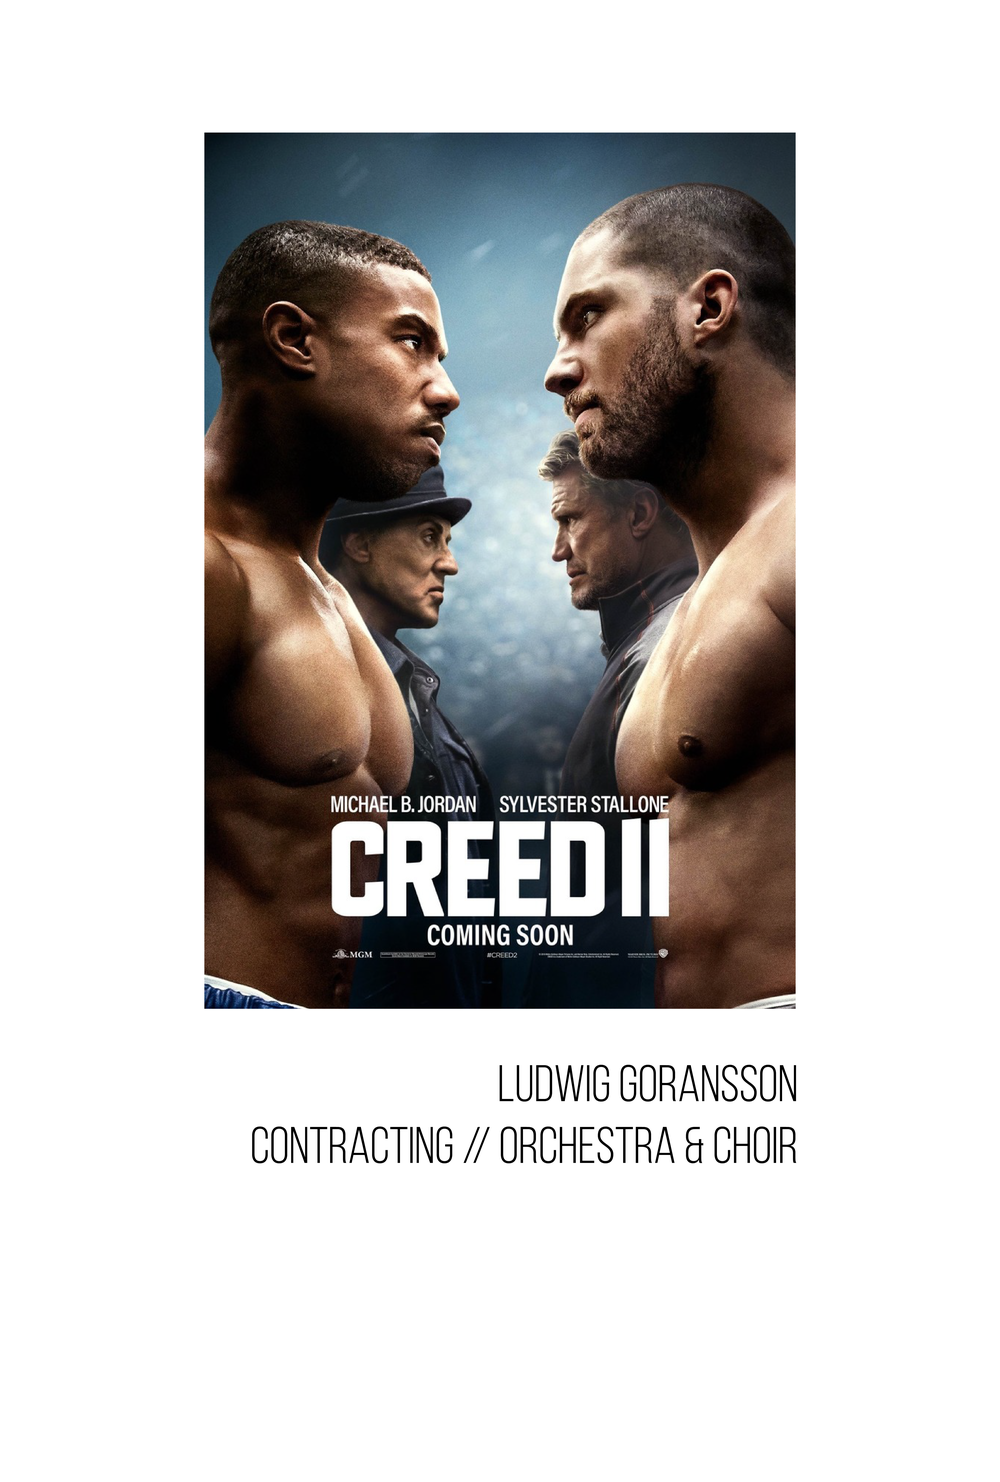 creed2-02-01.png